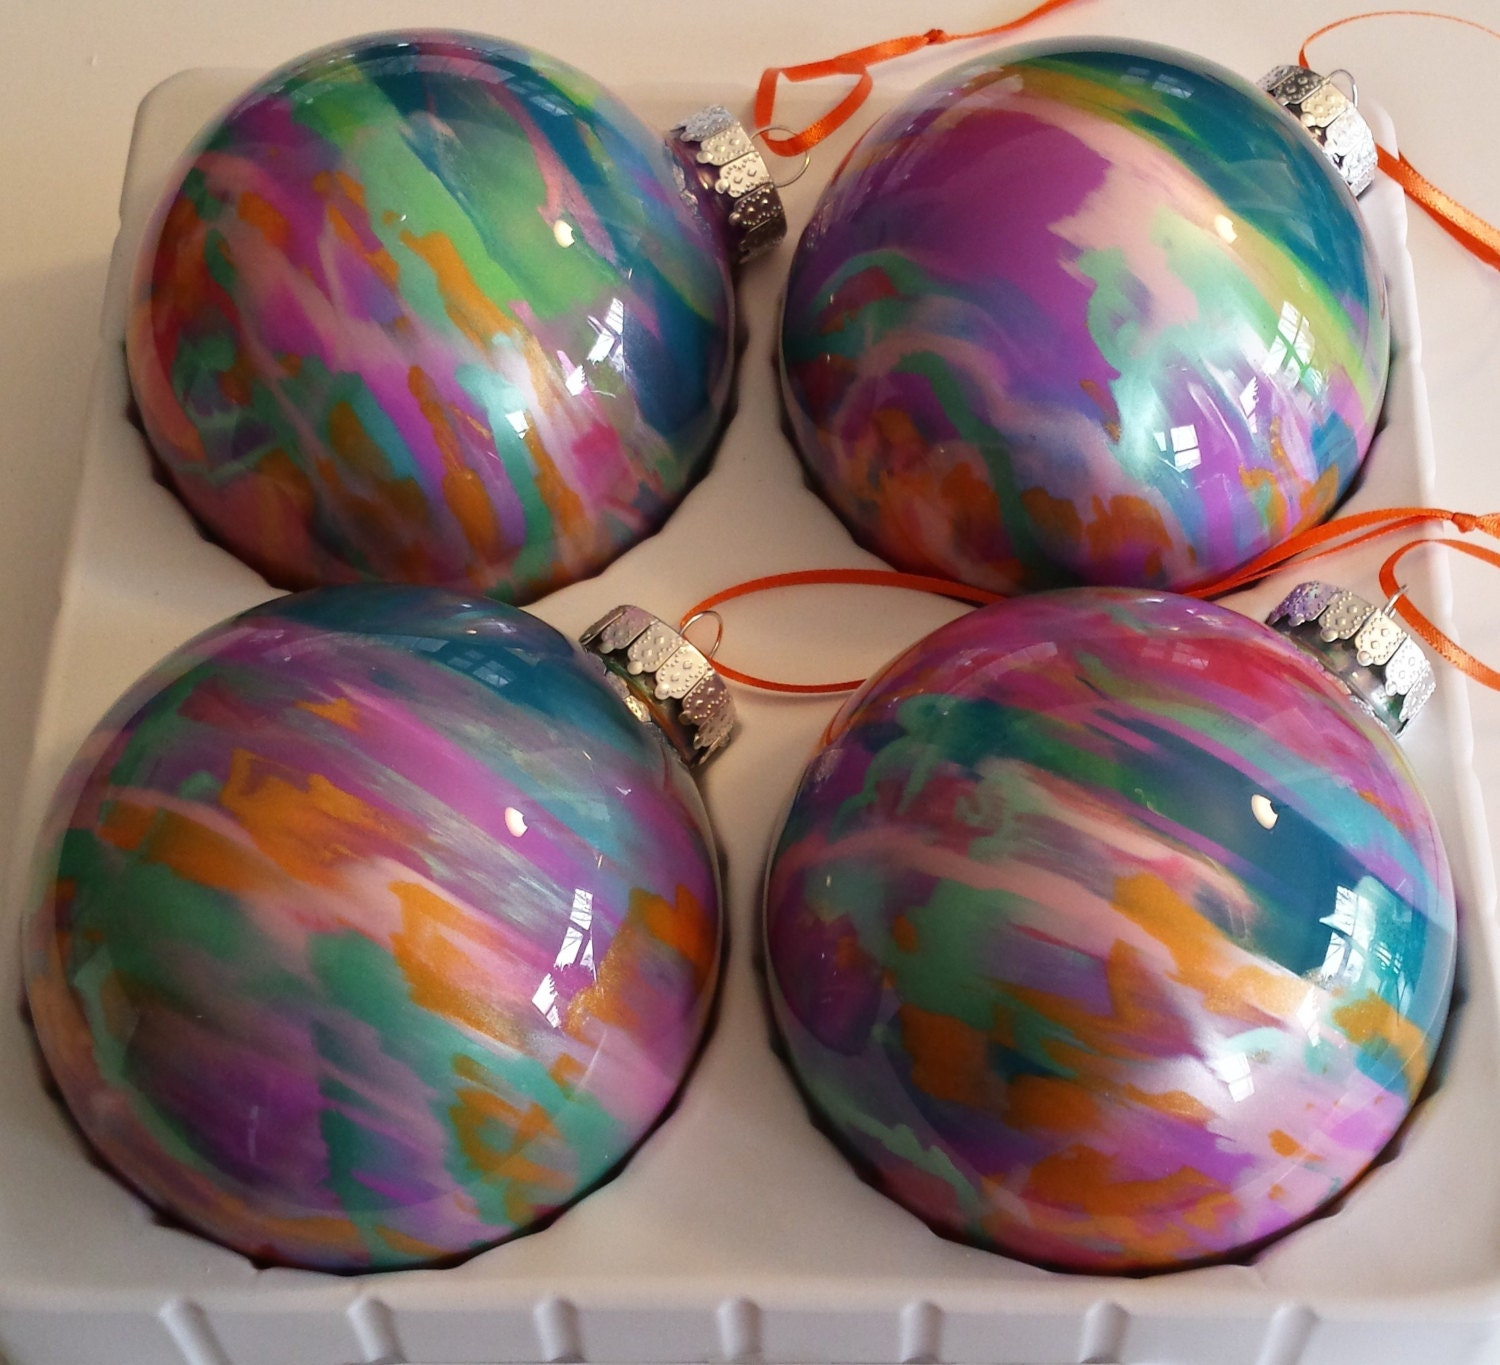 How To Decorate Glass Ornaments For Christmas: Paint Swirled Ornaments Large 100mm Painted Glass By